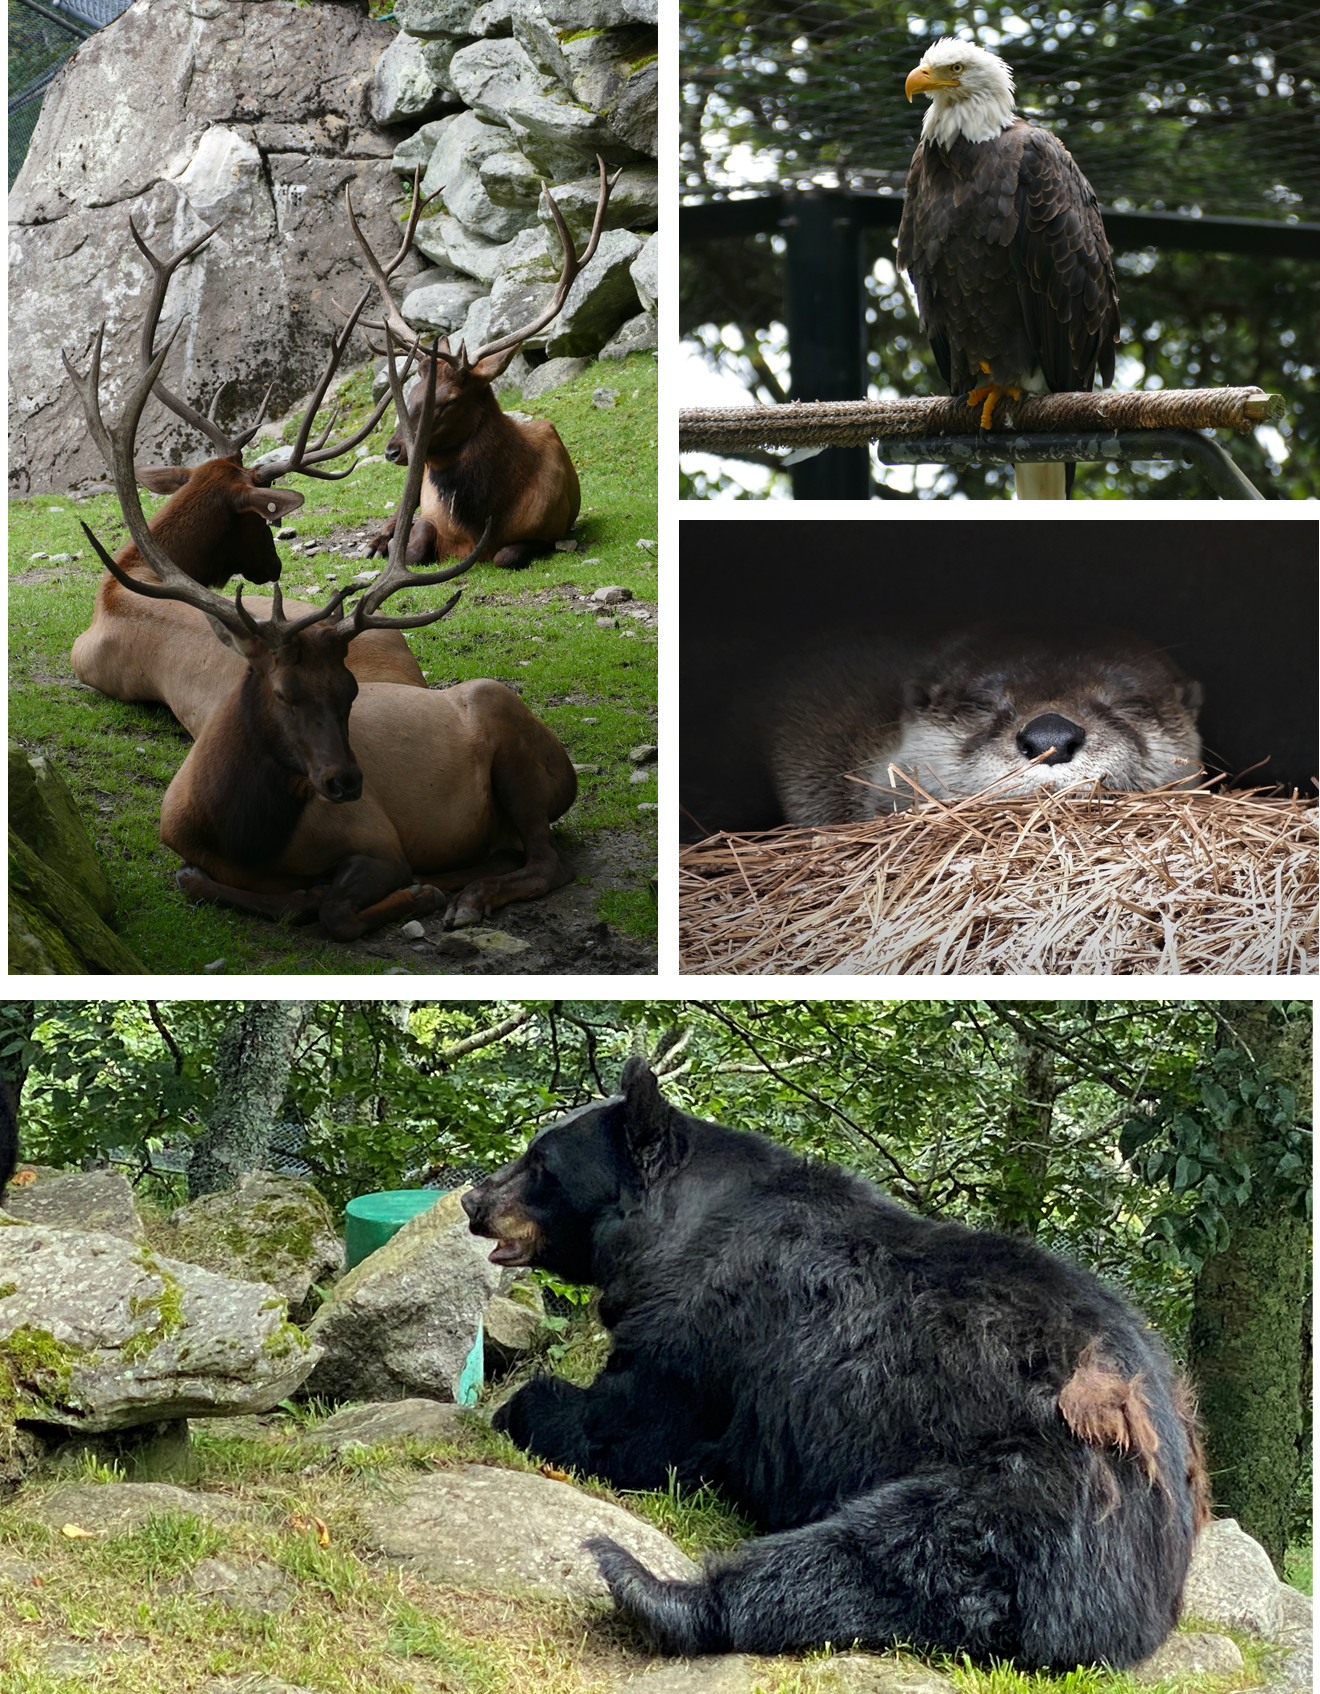 4 pictures - 3 seated elk, blad eagle on perch, face of sleeping otter, side view of resting black bear